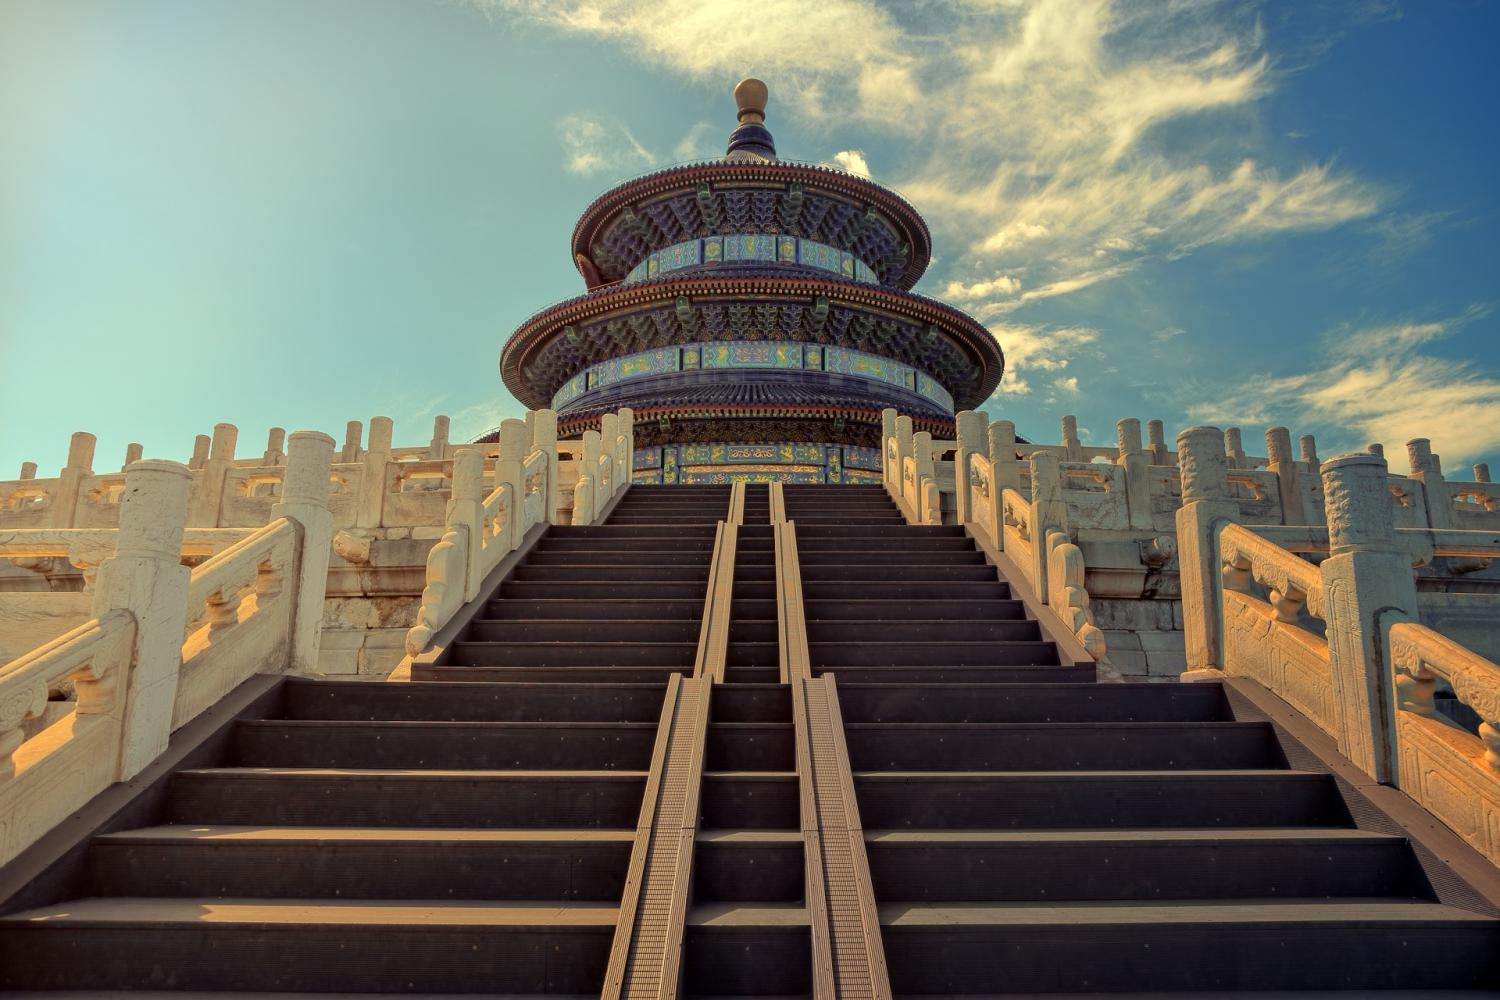 Beijing Combo Tour 2: Forbidden City,Temple of Heaven,Summer Palace & Mutianyu Great Wall